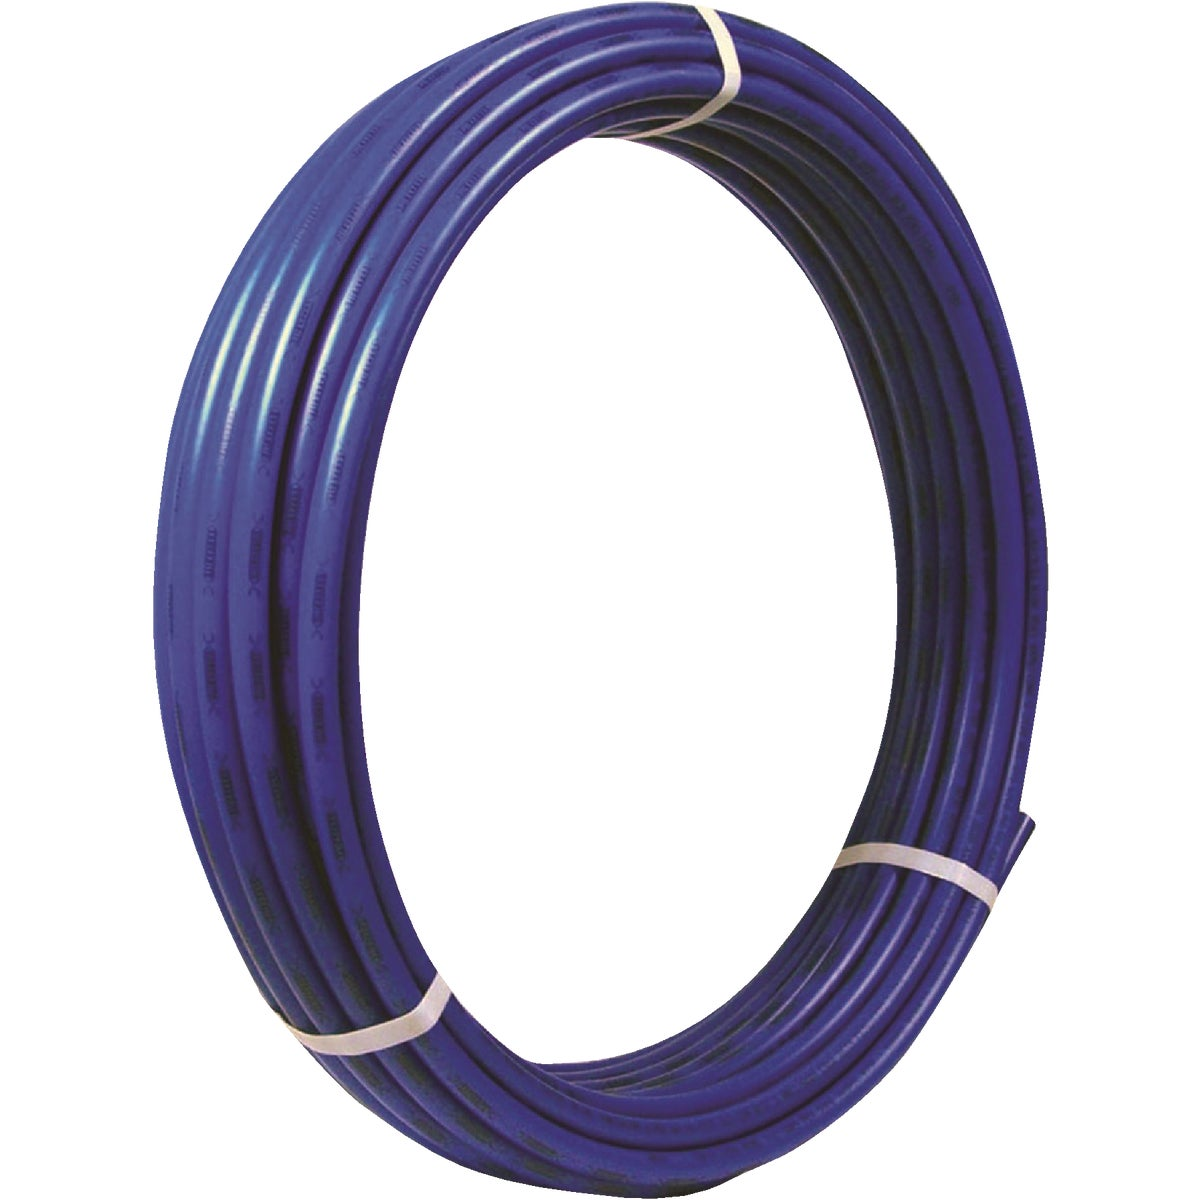 "1/2""X100 BLUE PEX TUBING - P-12-100B by Watts Regulator Co"